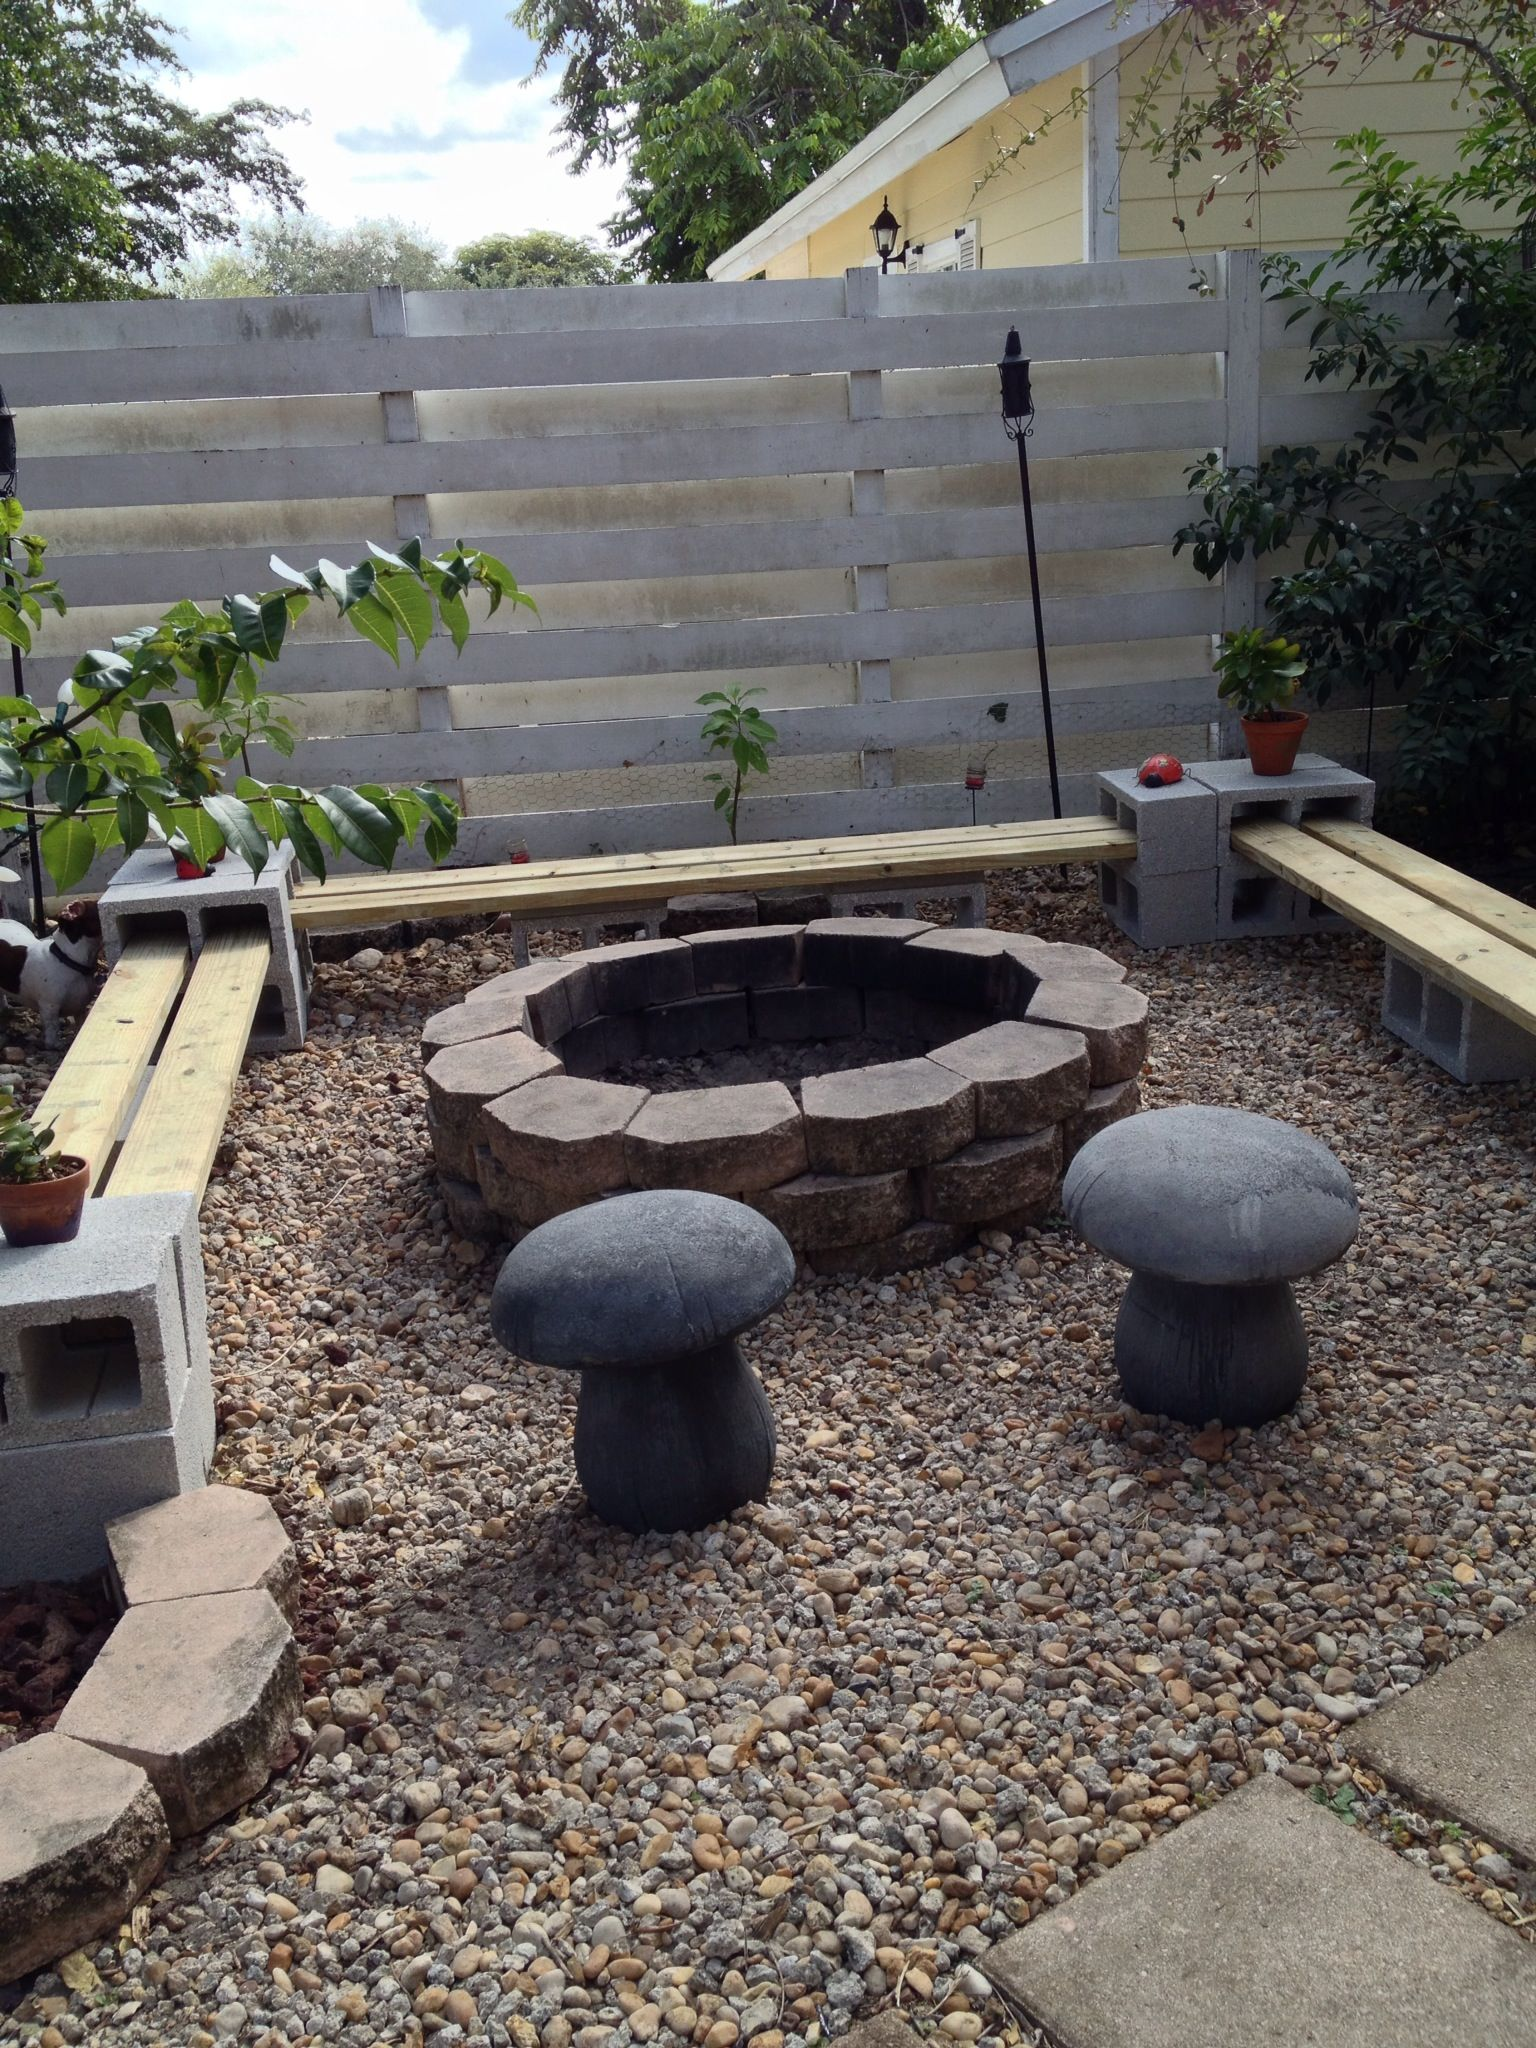 Easy To Make A Bench Around Firepit, All You Need Is 24 Cinder Blocks And